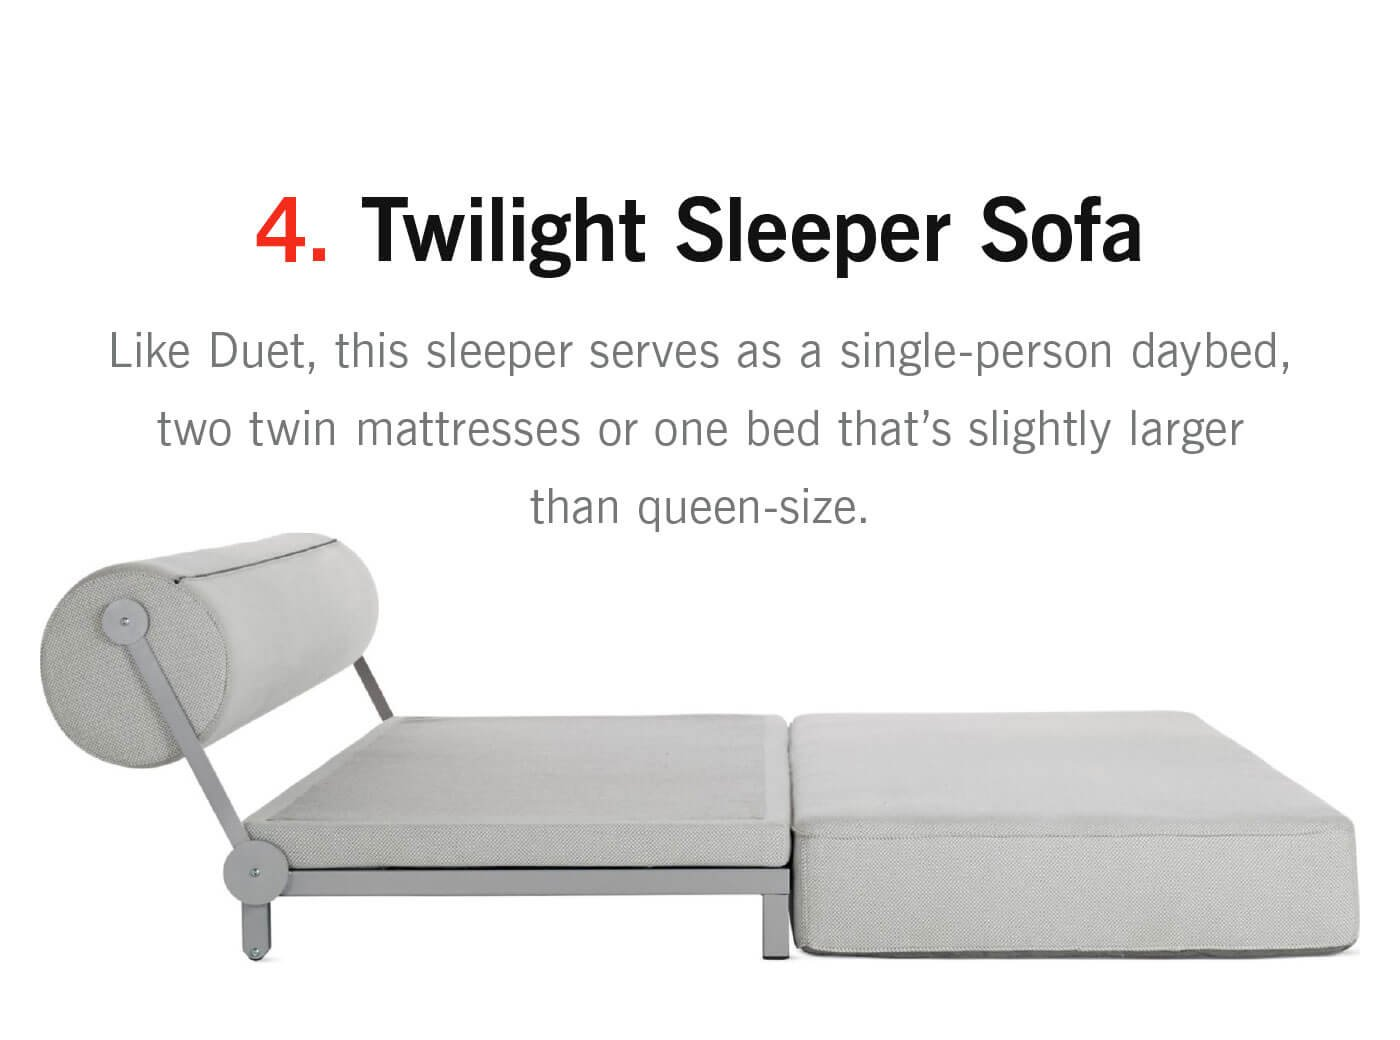 Twilight Sleeper Sofa - Like Duet, this sleeper serves as a single-person  daybed